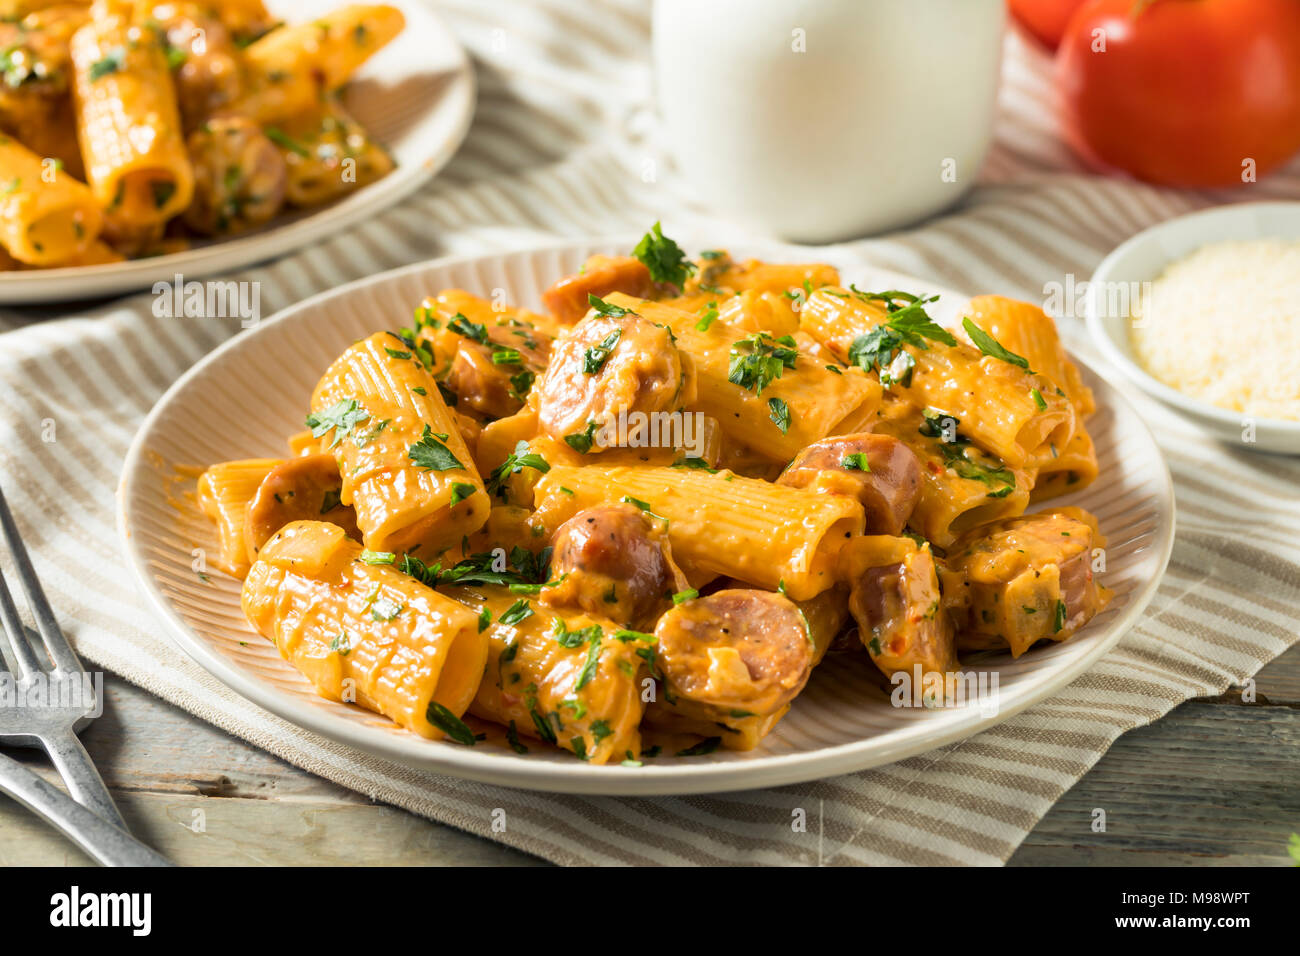 Homemade Sausage and Fennel Rigatoni with Cream Sauce - Stock Image